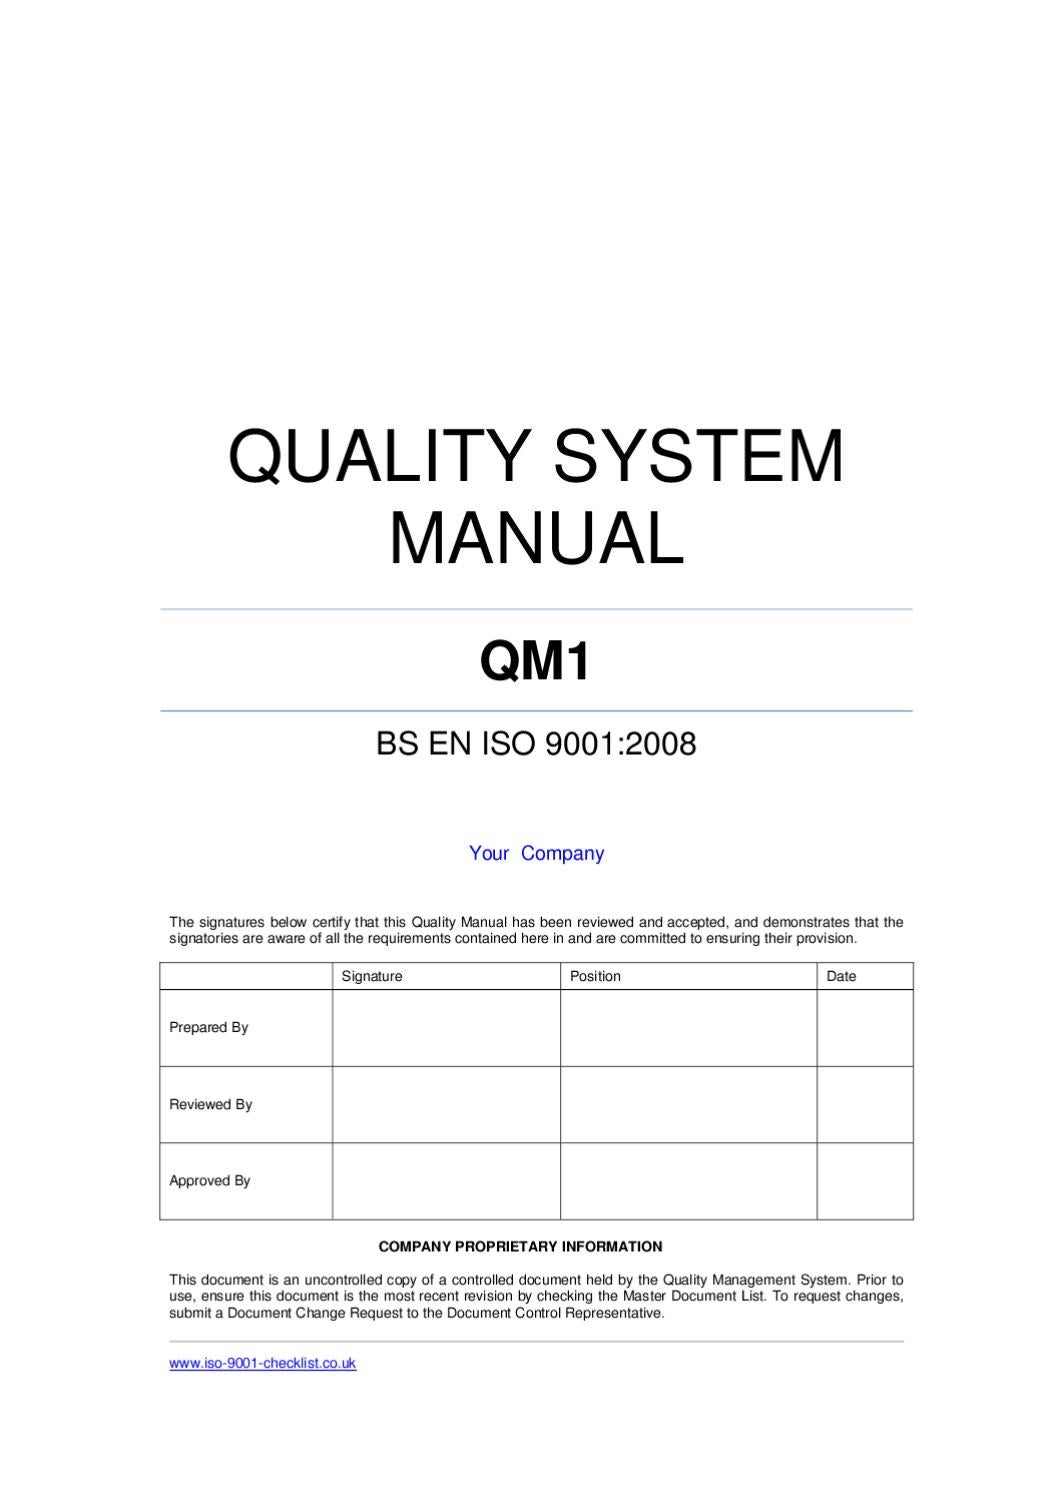 iso 9001 quality manual for services